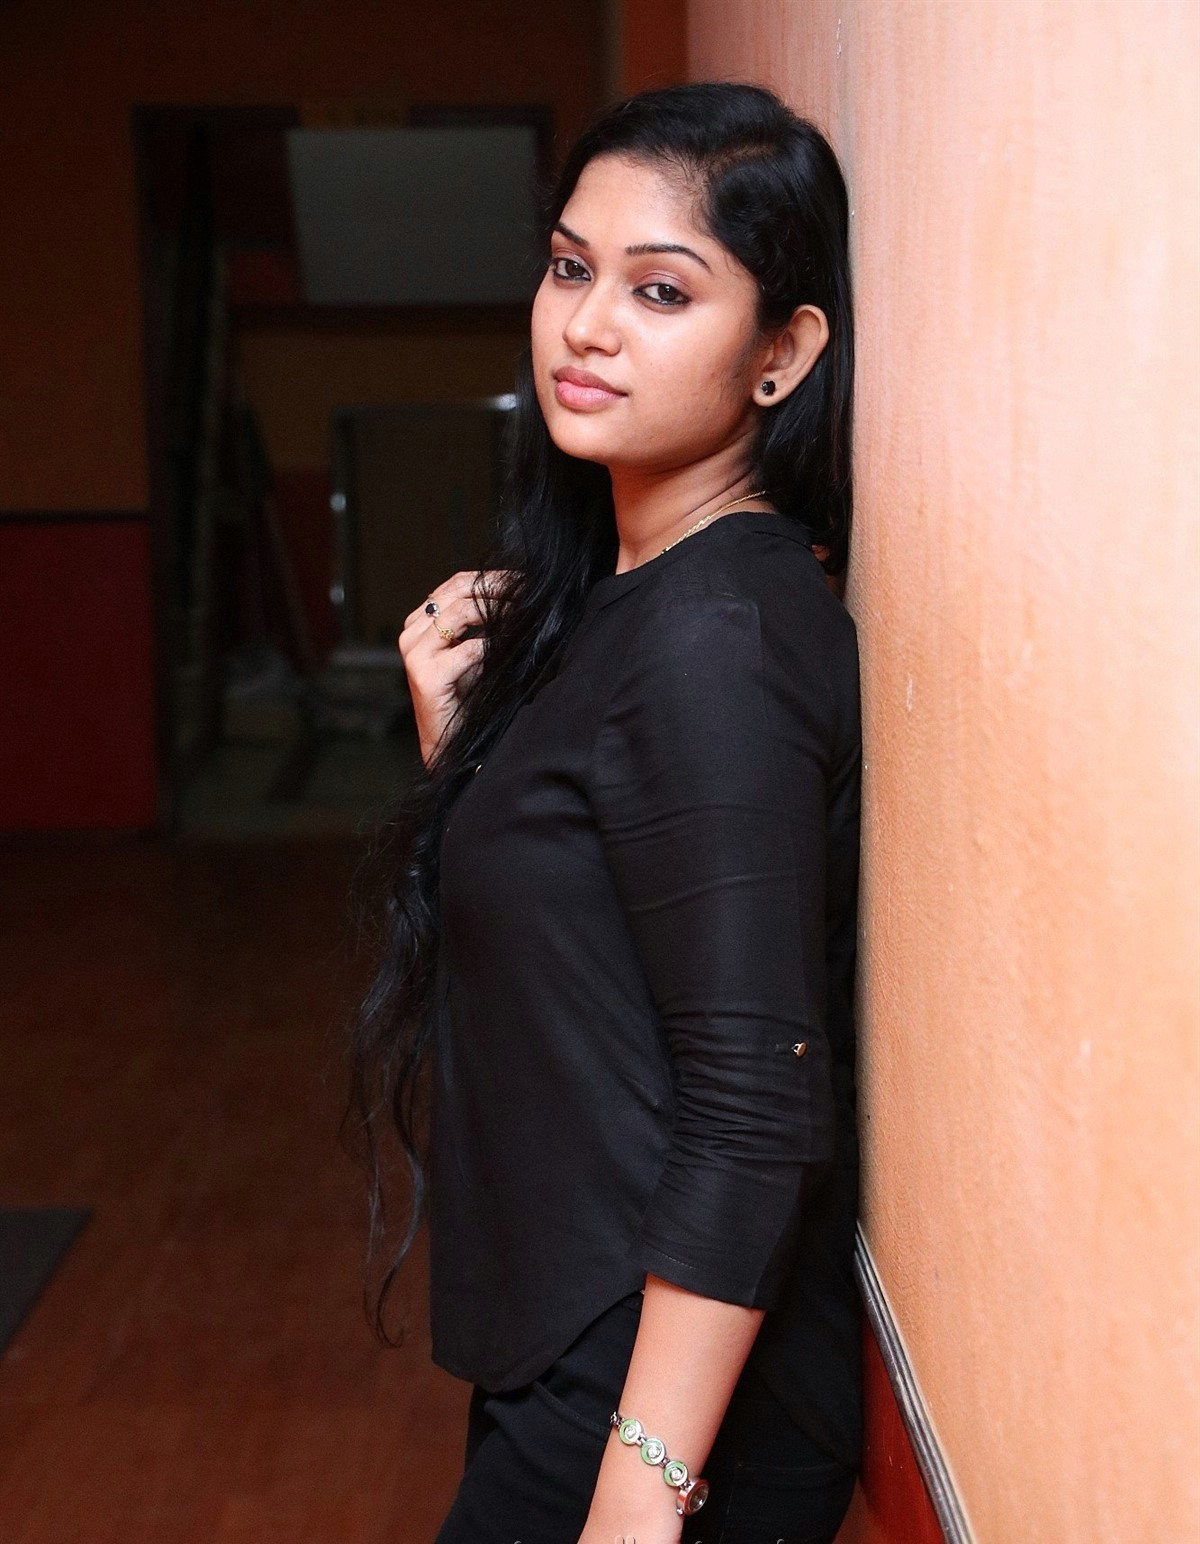 tamil-actress-sri-priyanka-hd-images-in-black-4